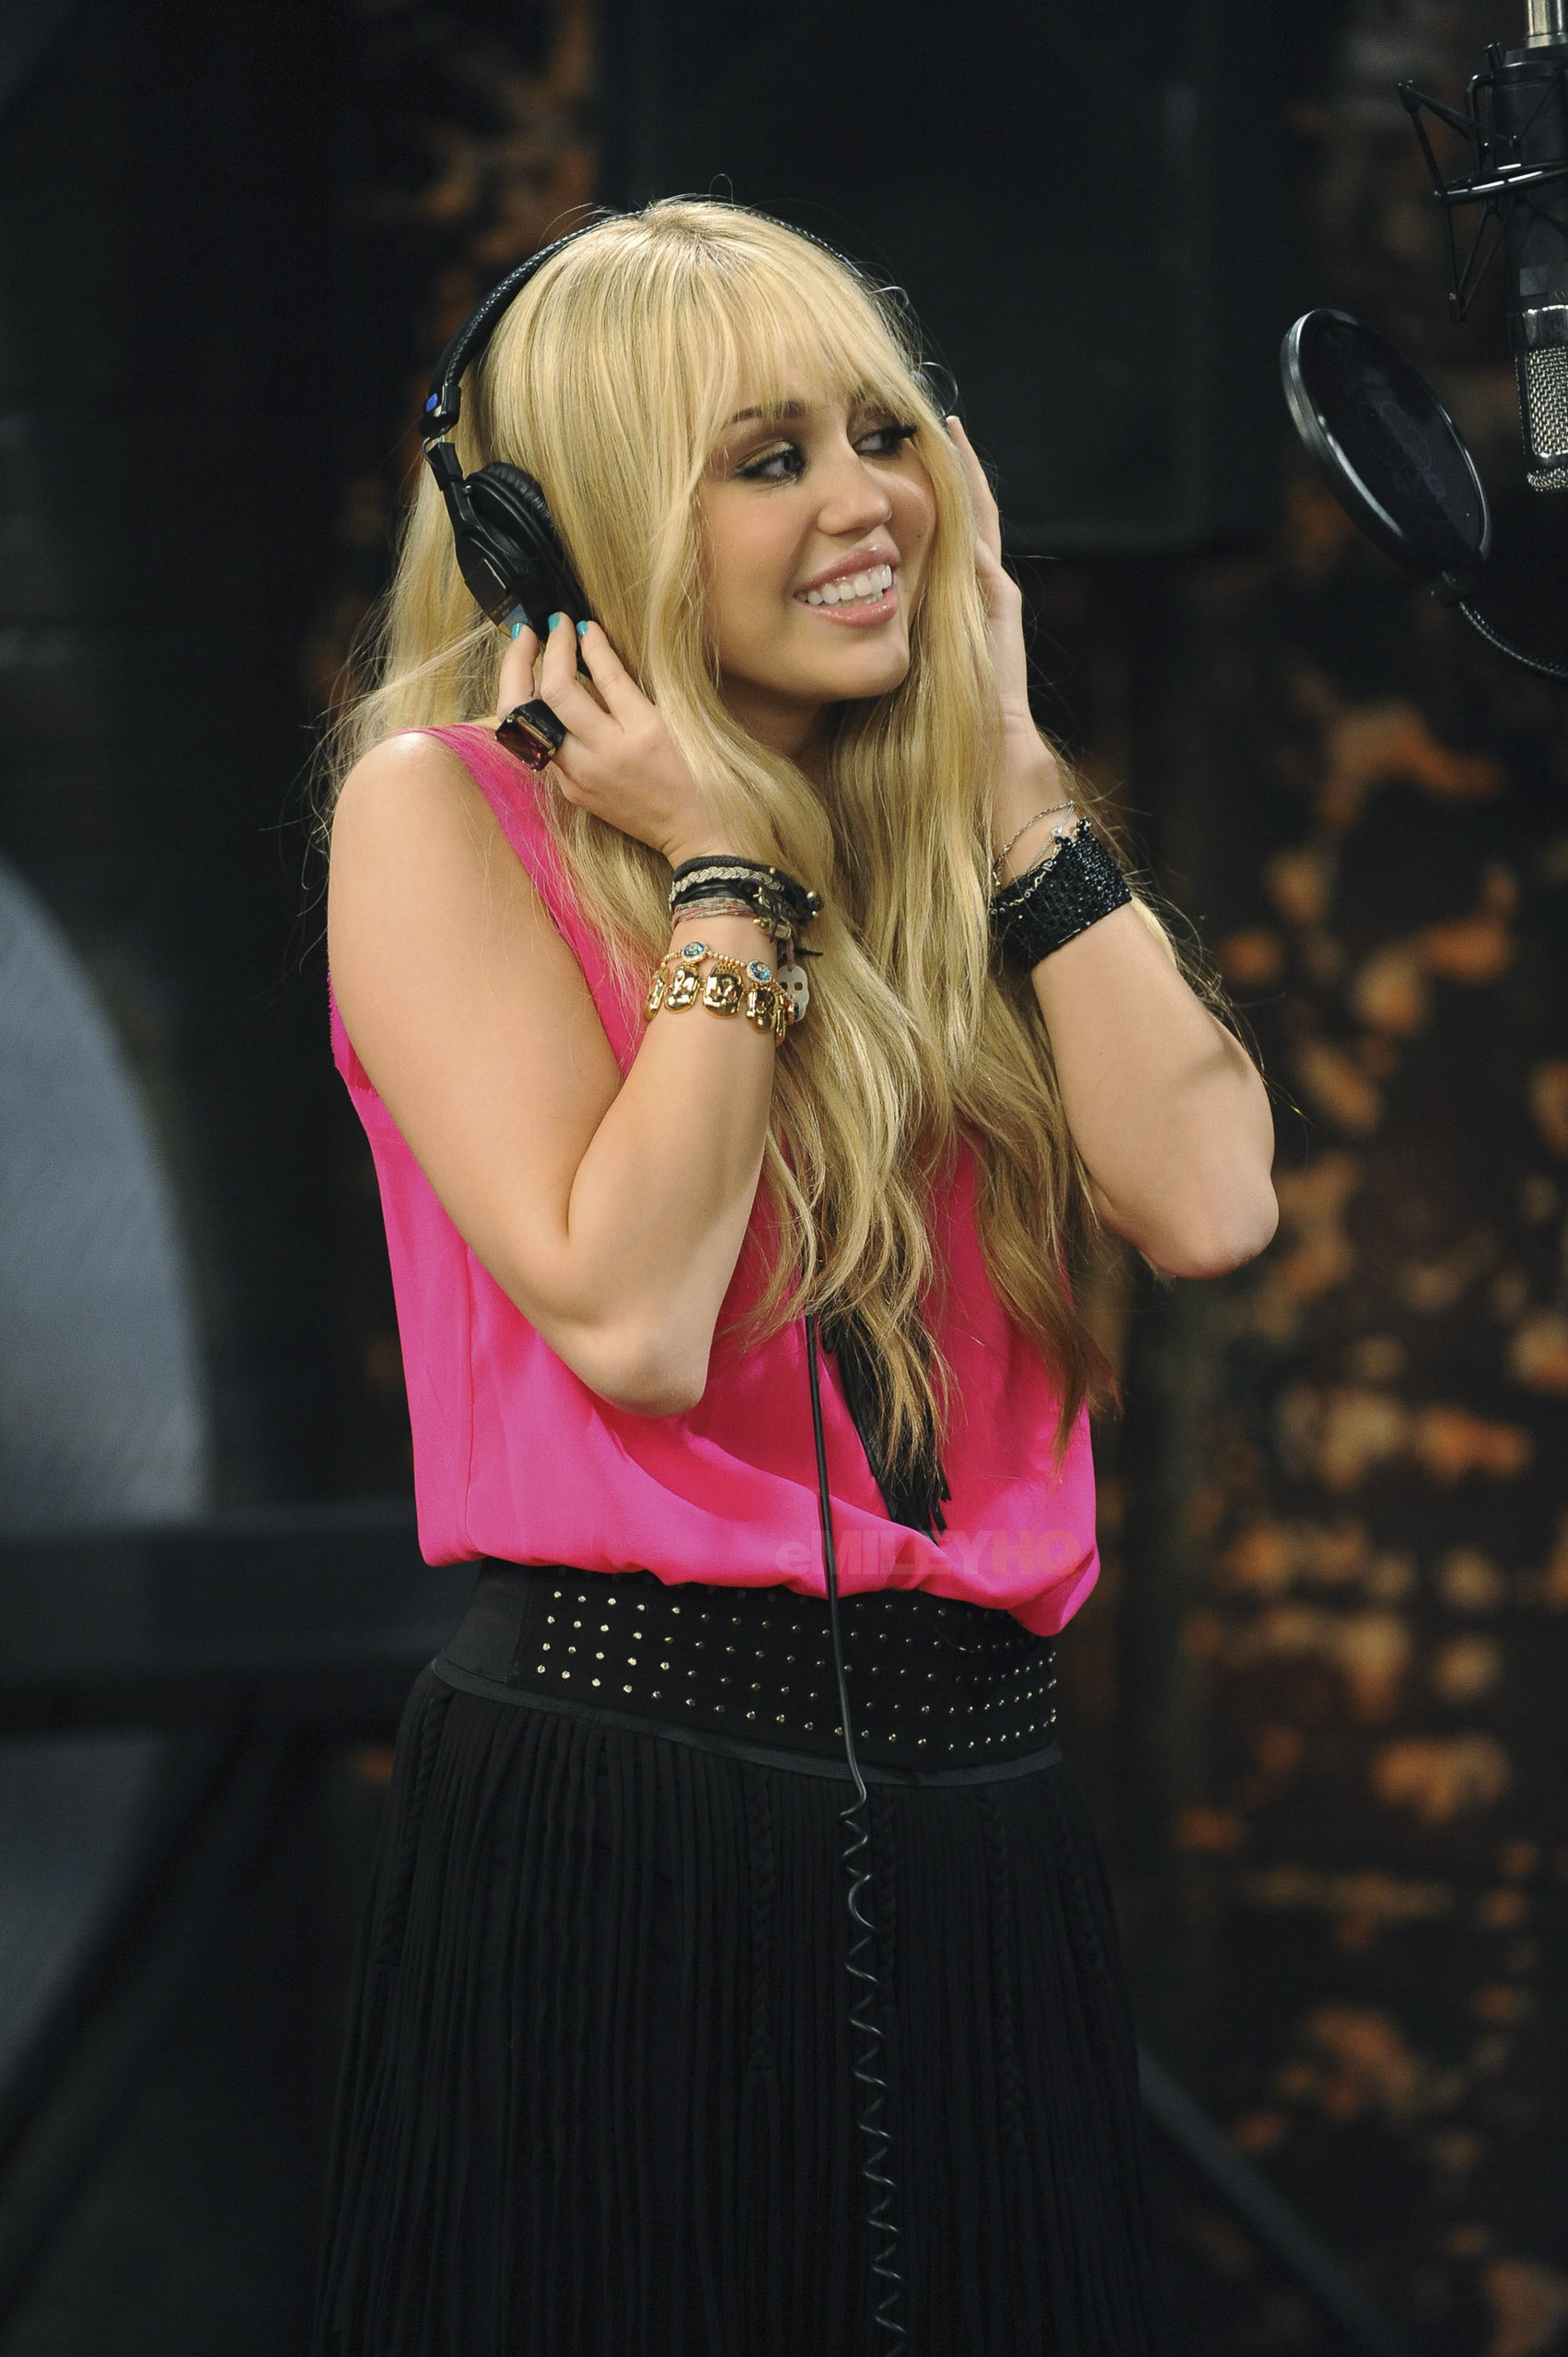 http://images4.fanpop.com/image/photos/15800000/Hannah-s-Gonna-Get-This-hannah-montana-15815387-1703-2560.jpg